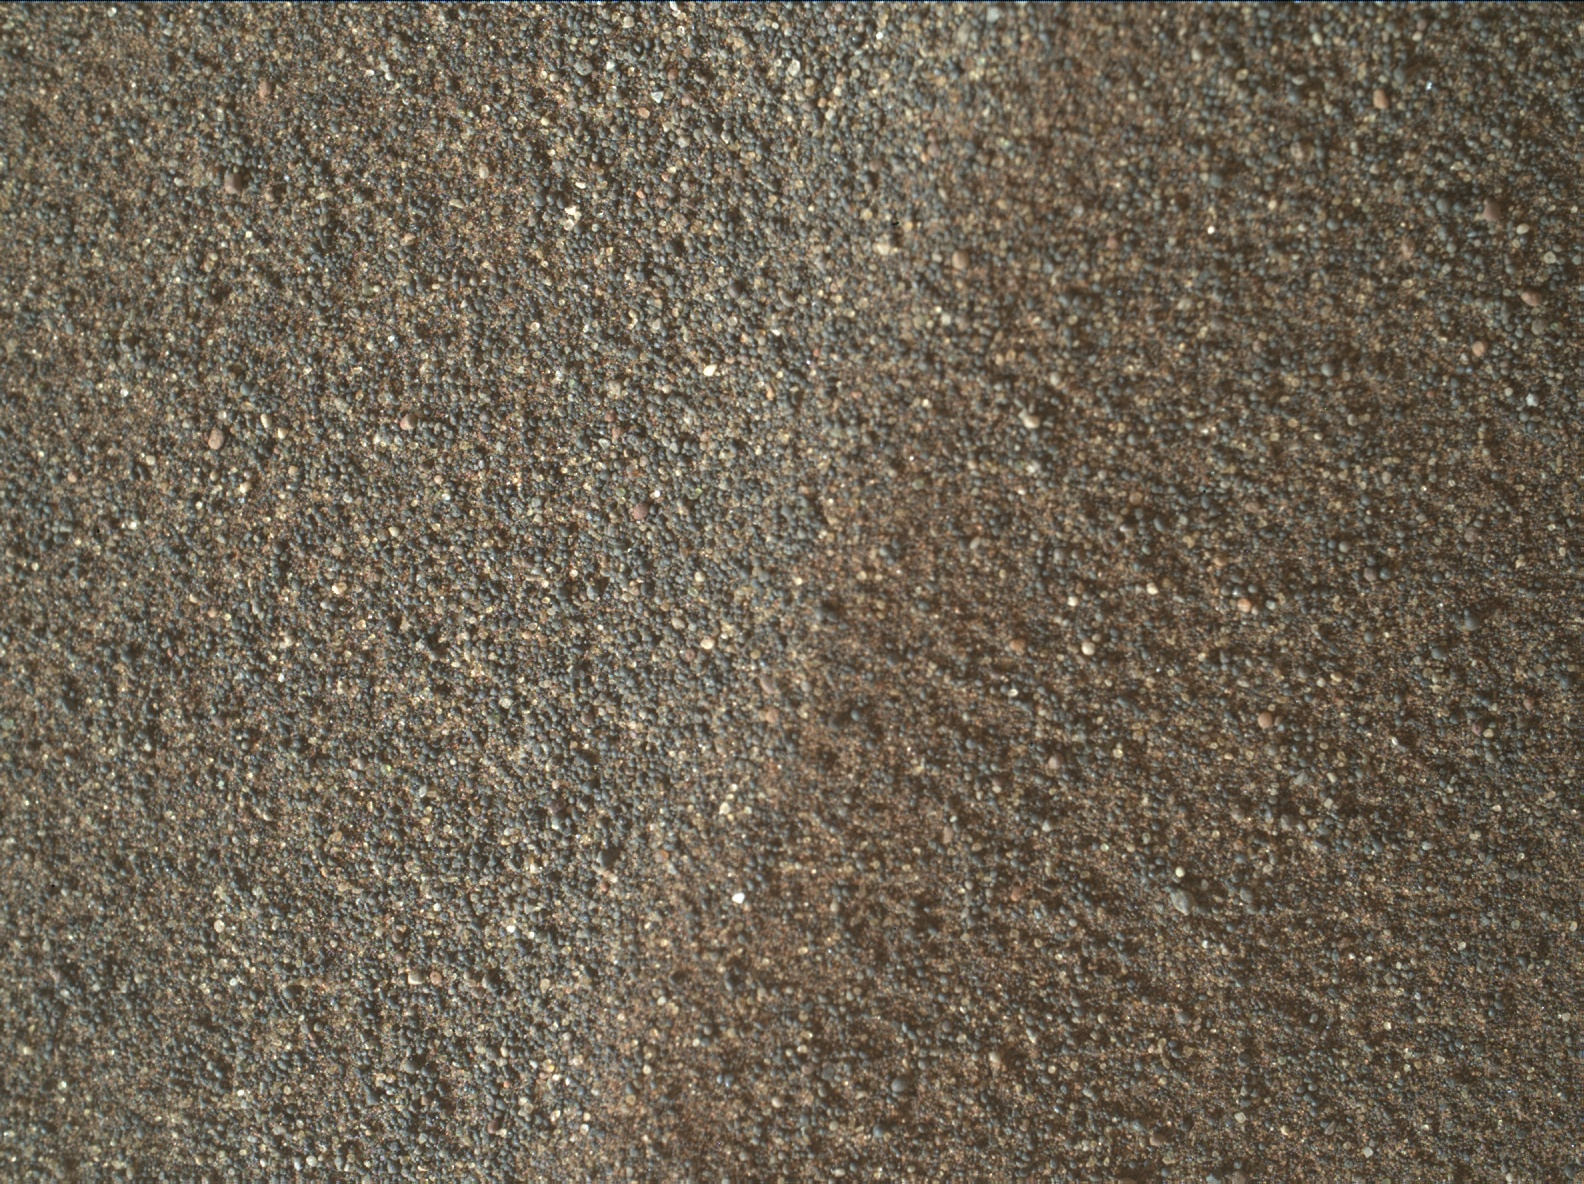 Nasa's Mars rover Curiosity acquired this image using its Mars Hand Lens Imager (MAHLI) on Sol 2994